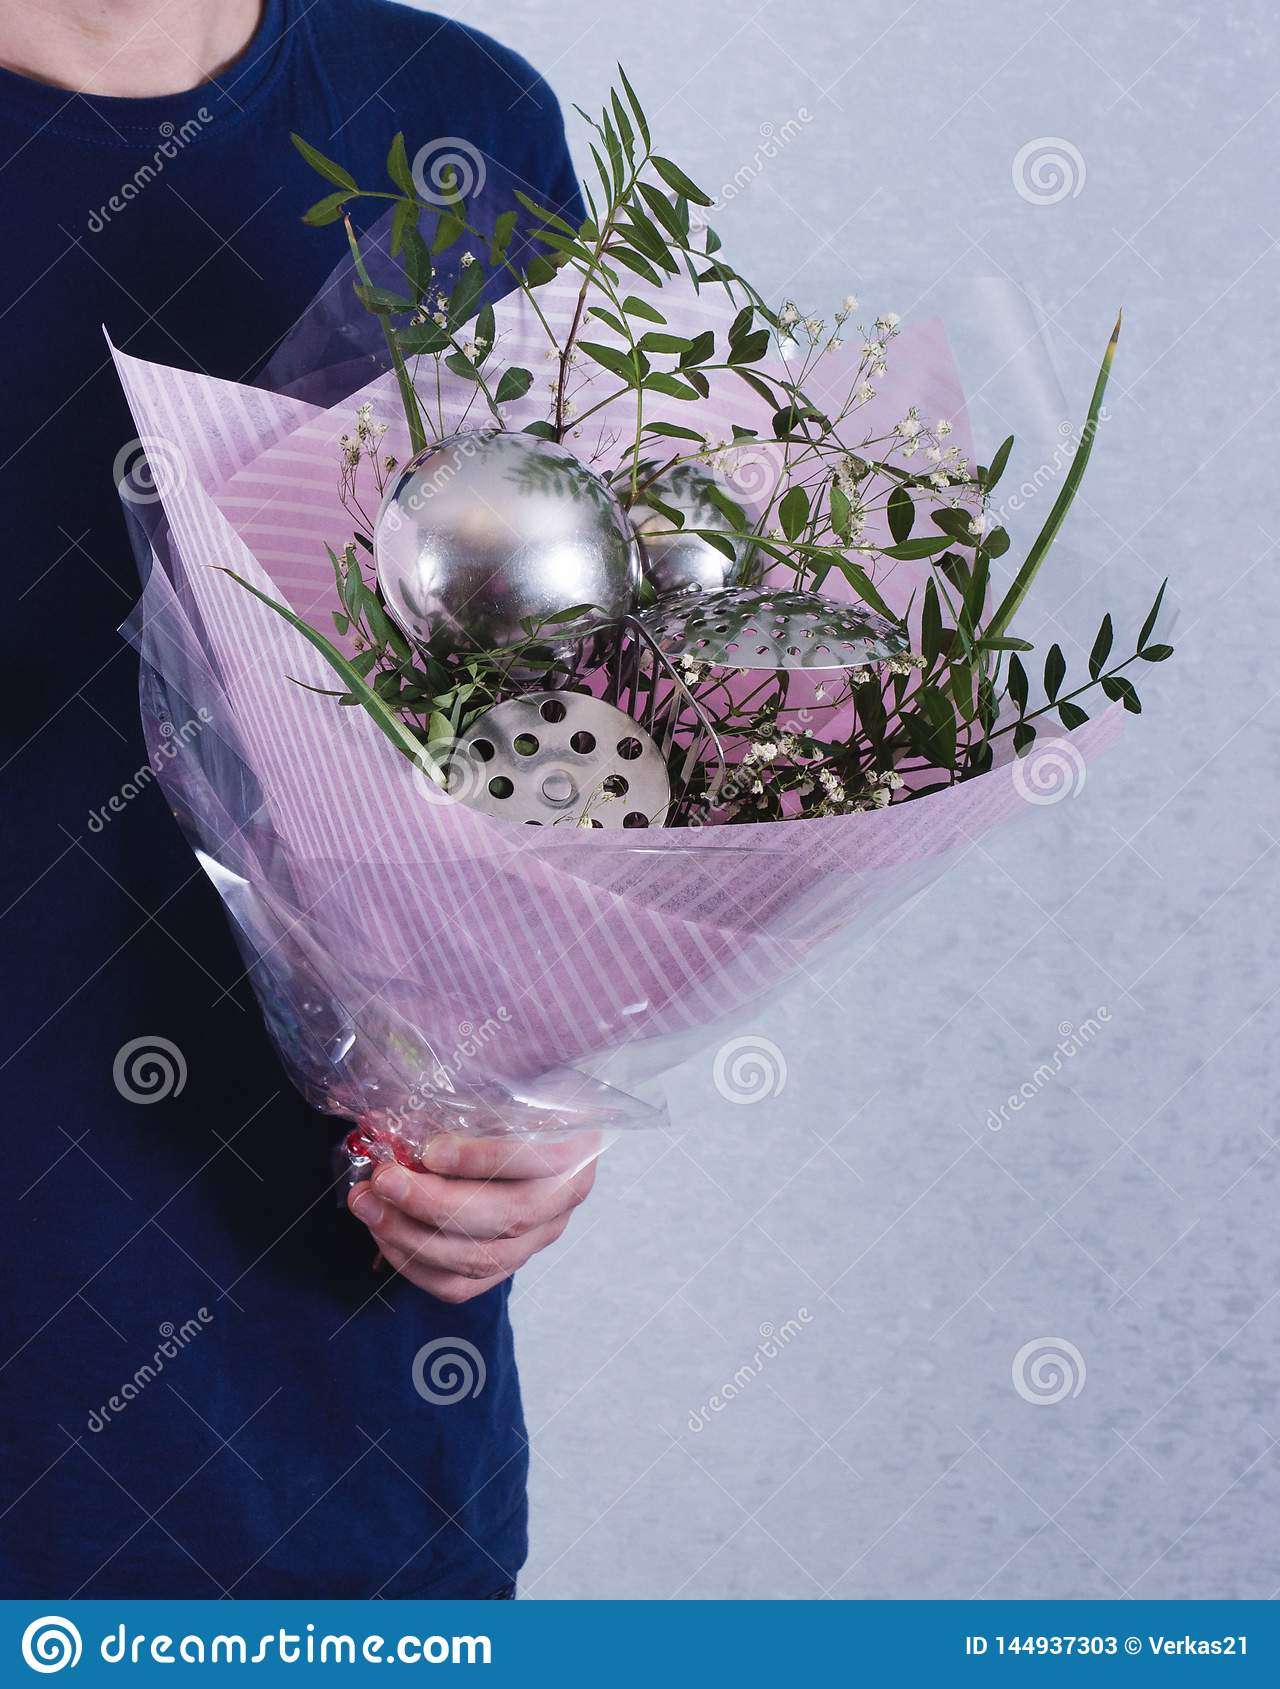 A man hold bouquet of flowers and ladles. concept of sexism, feminism and patriarchal society and gender inequality